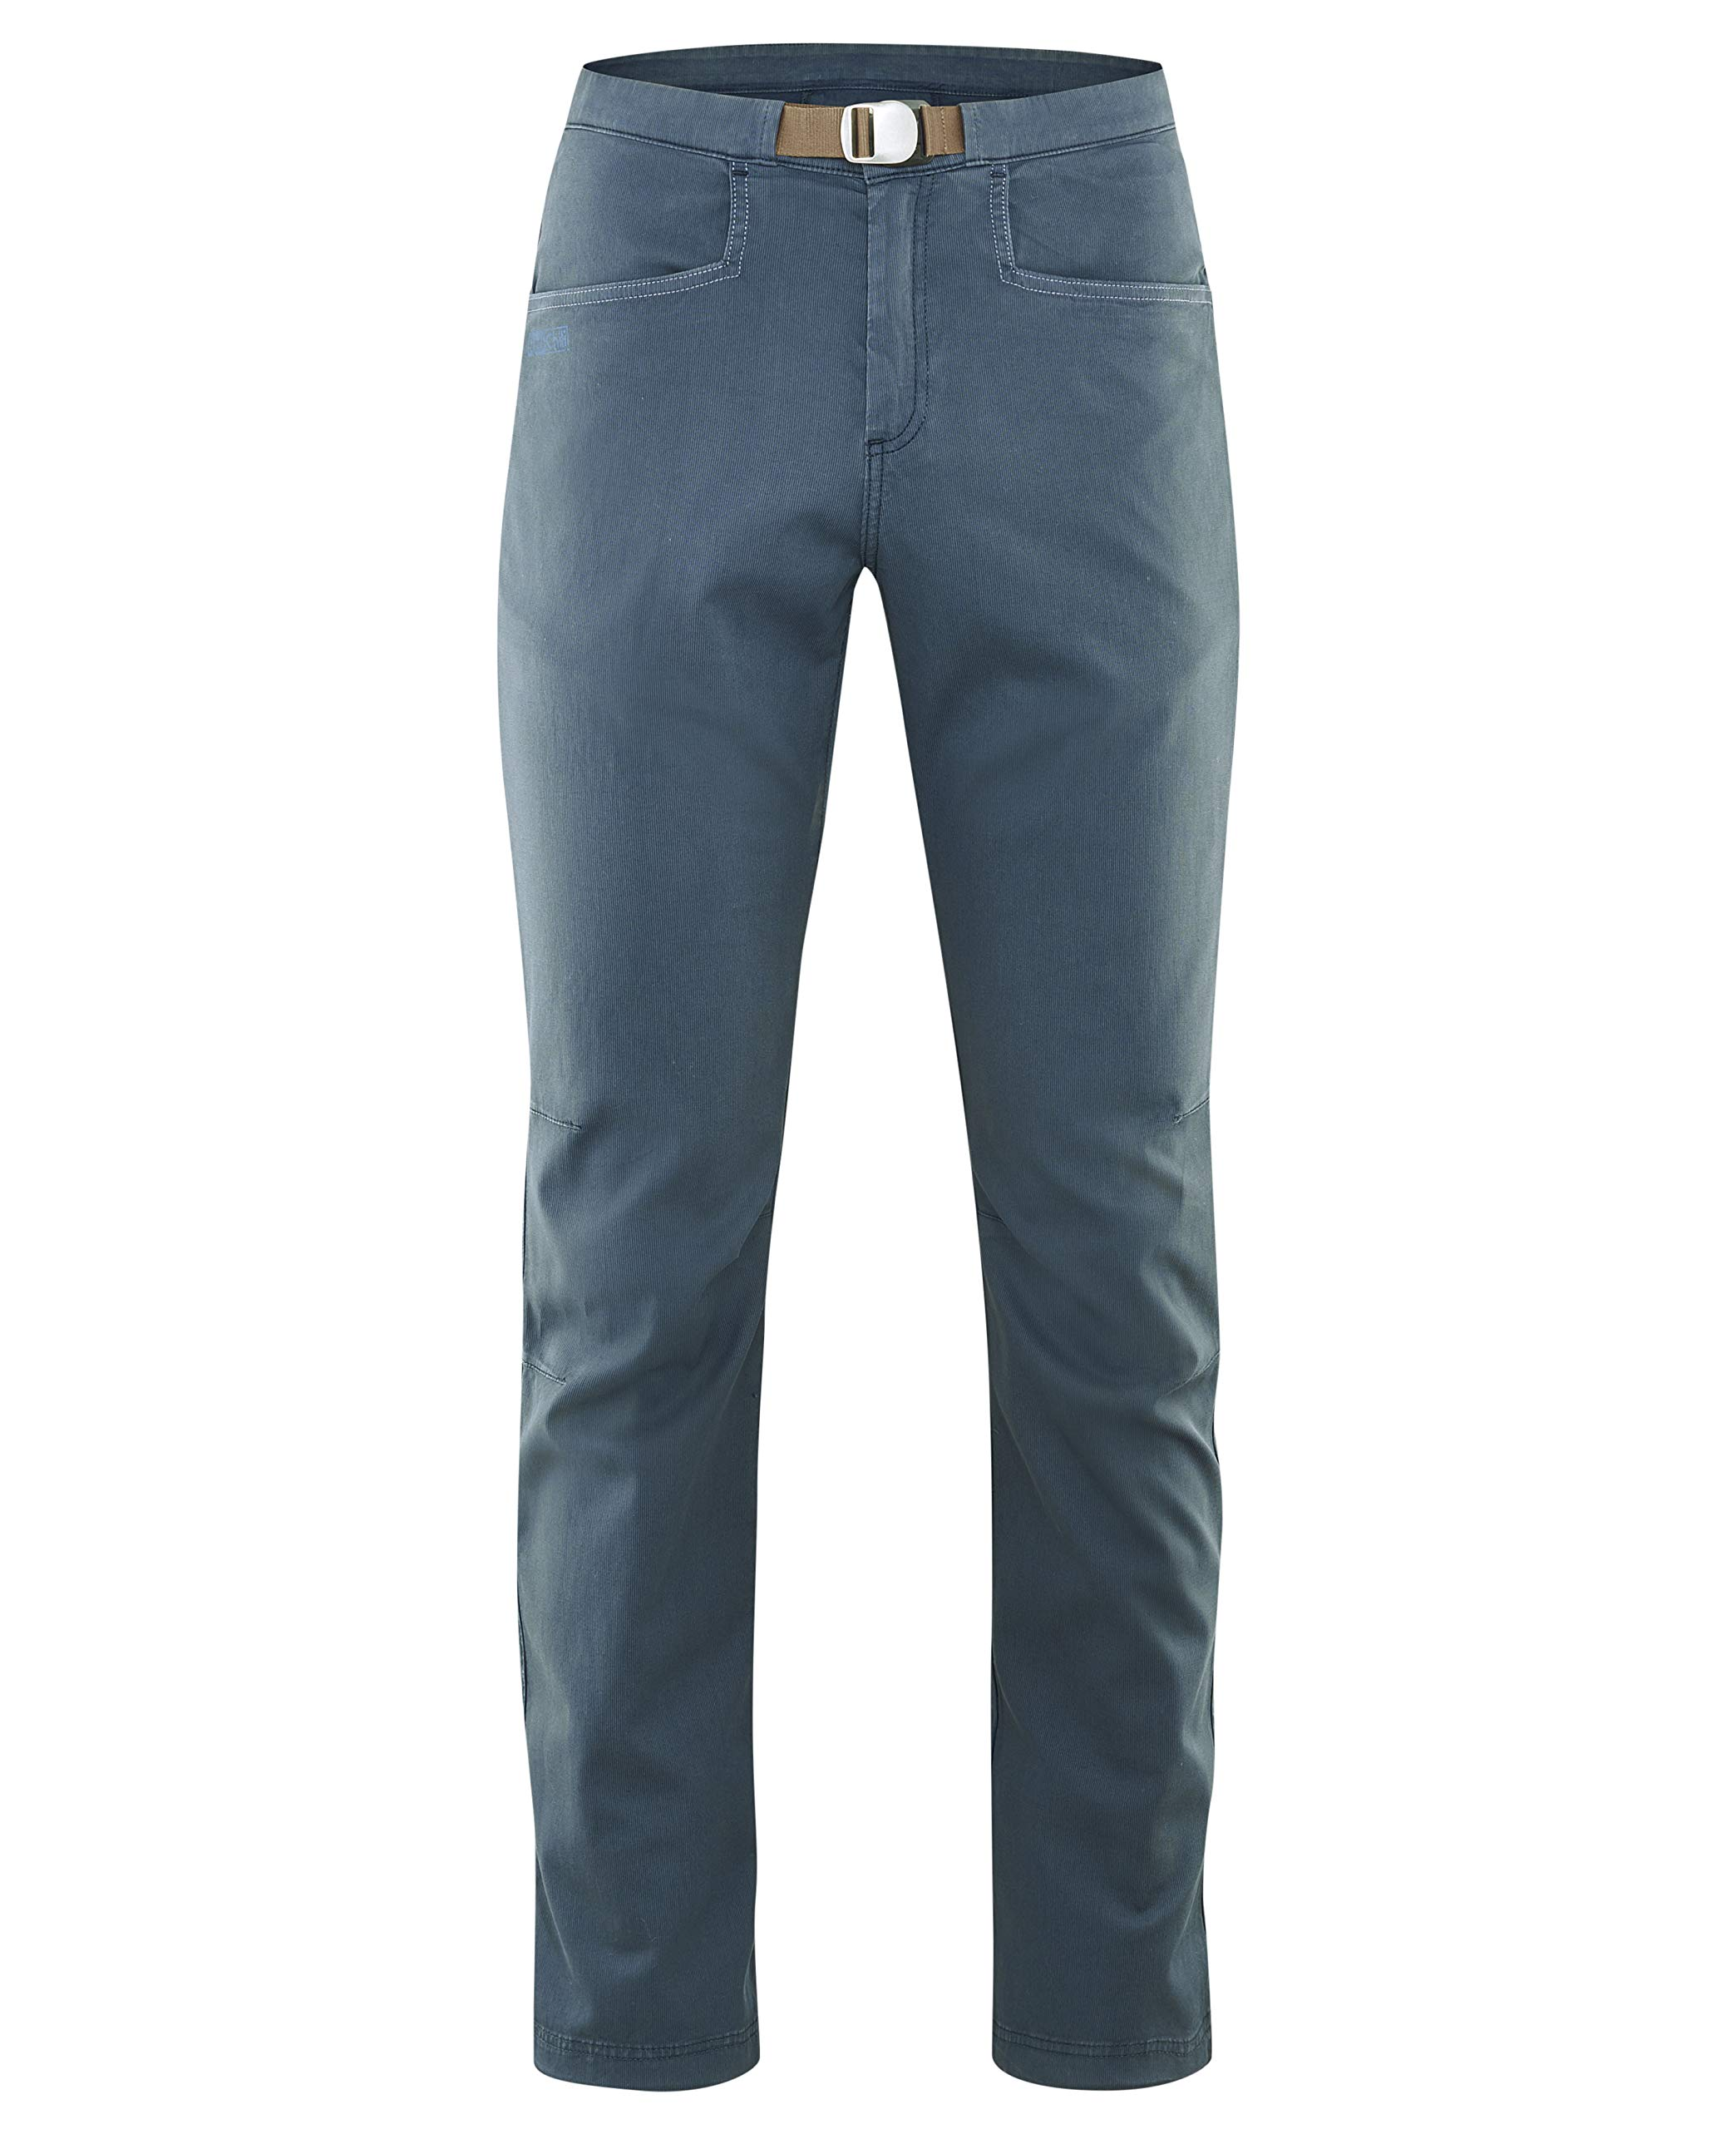 Red Chili Herren Me Mescalito Pants, Deepblue, L